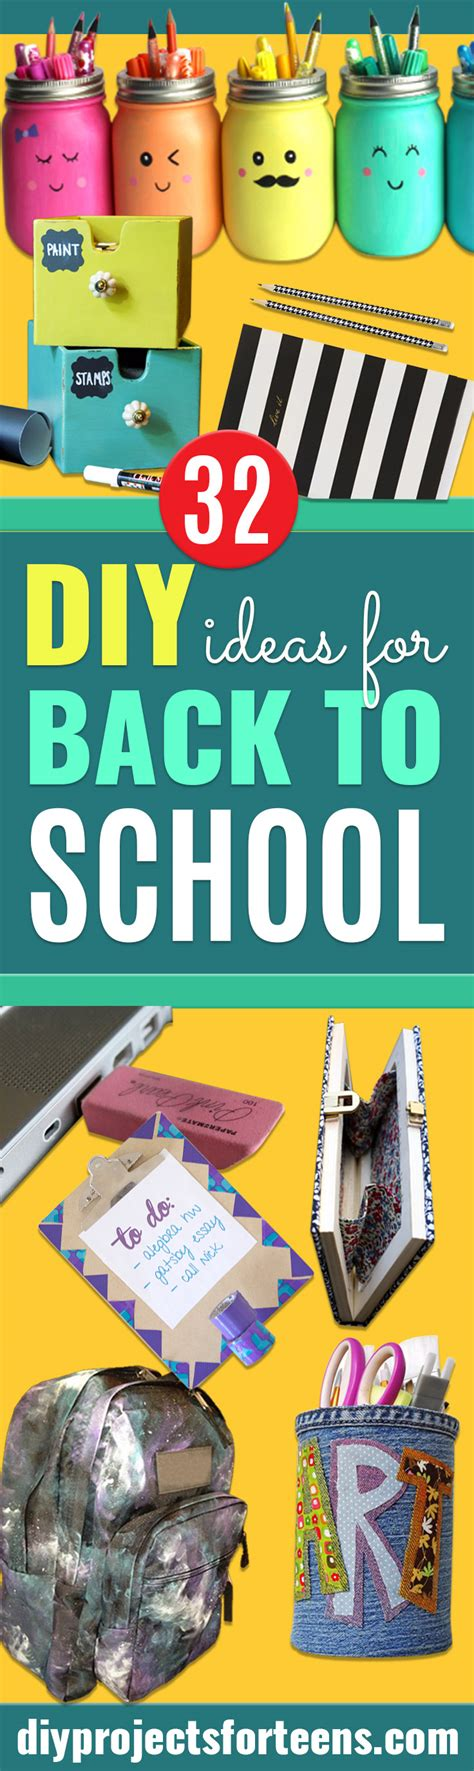 diy projects for high school 32 diy ideas for back to school supplies diy projects